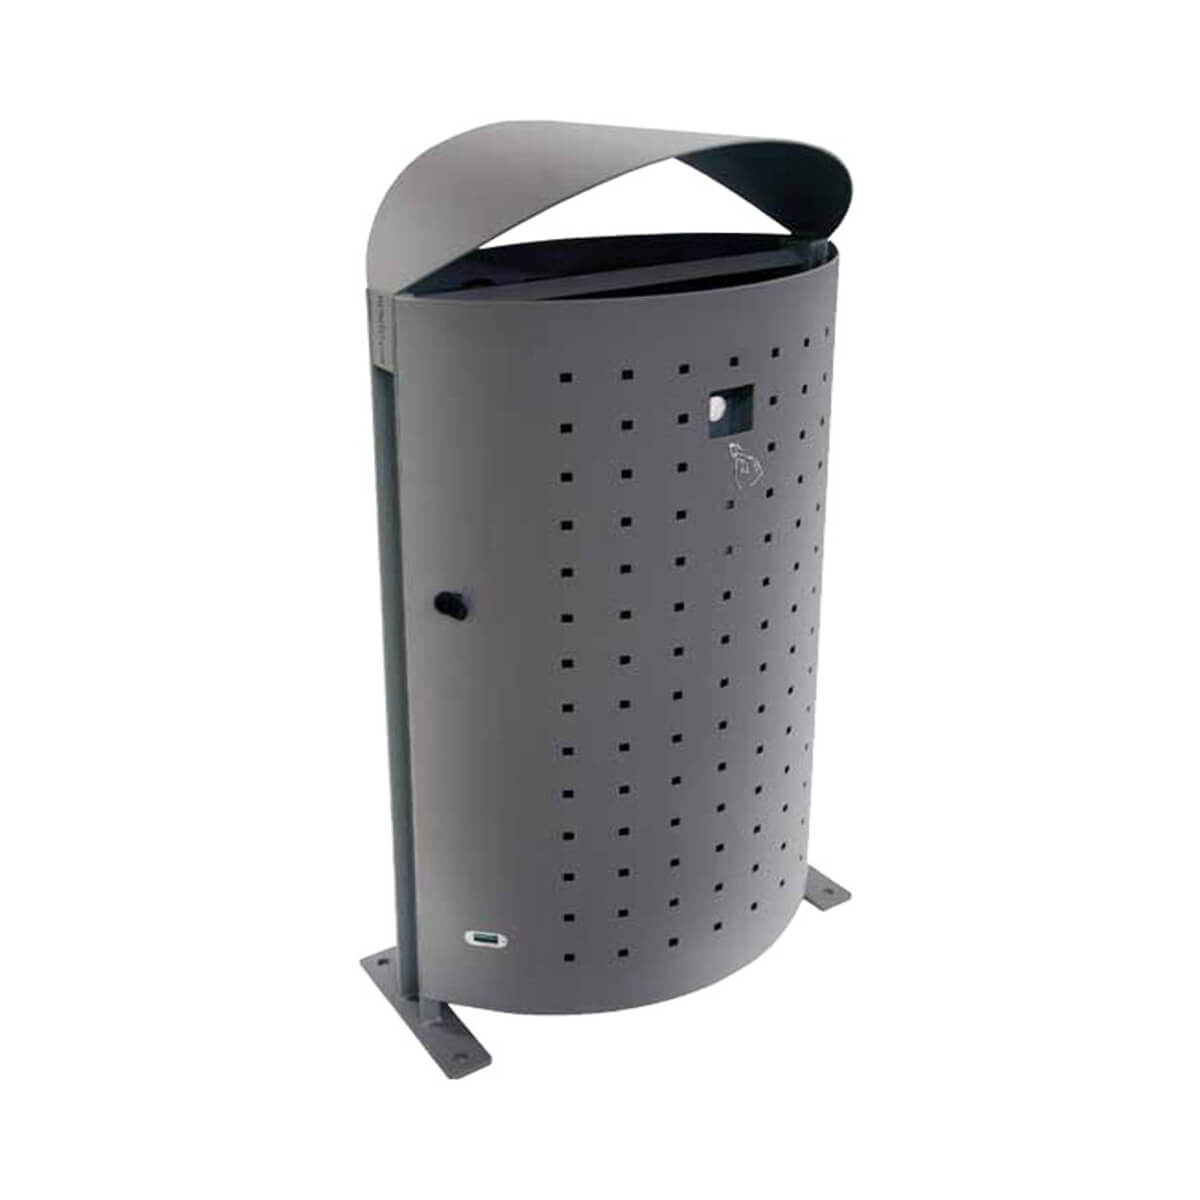 _0000s_0009_Dara Outdoor Litter Bin #U694S